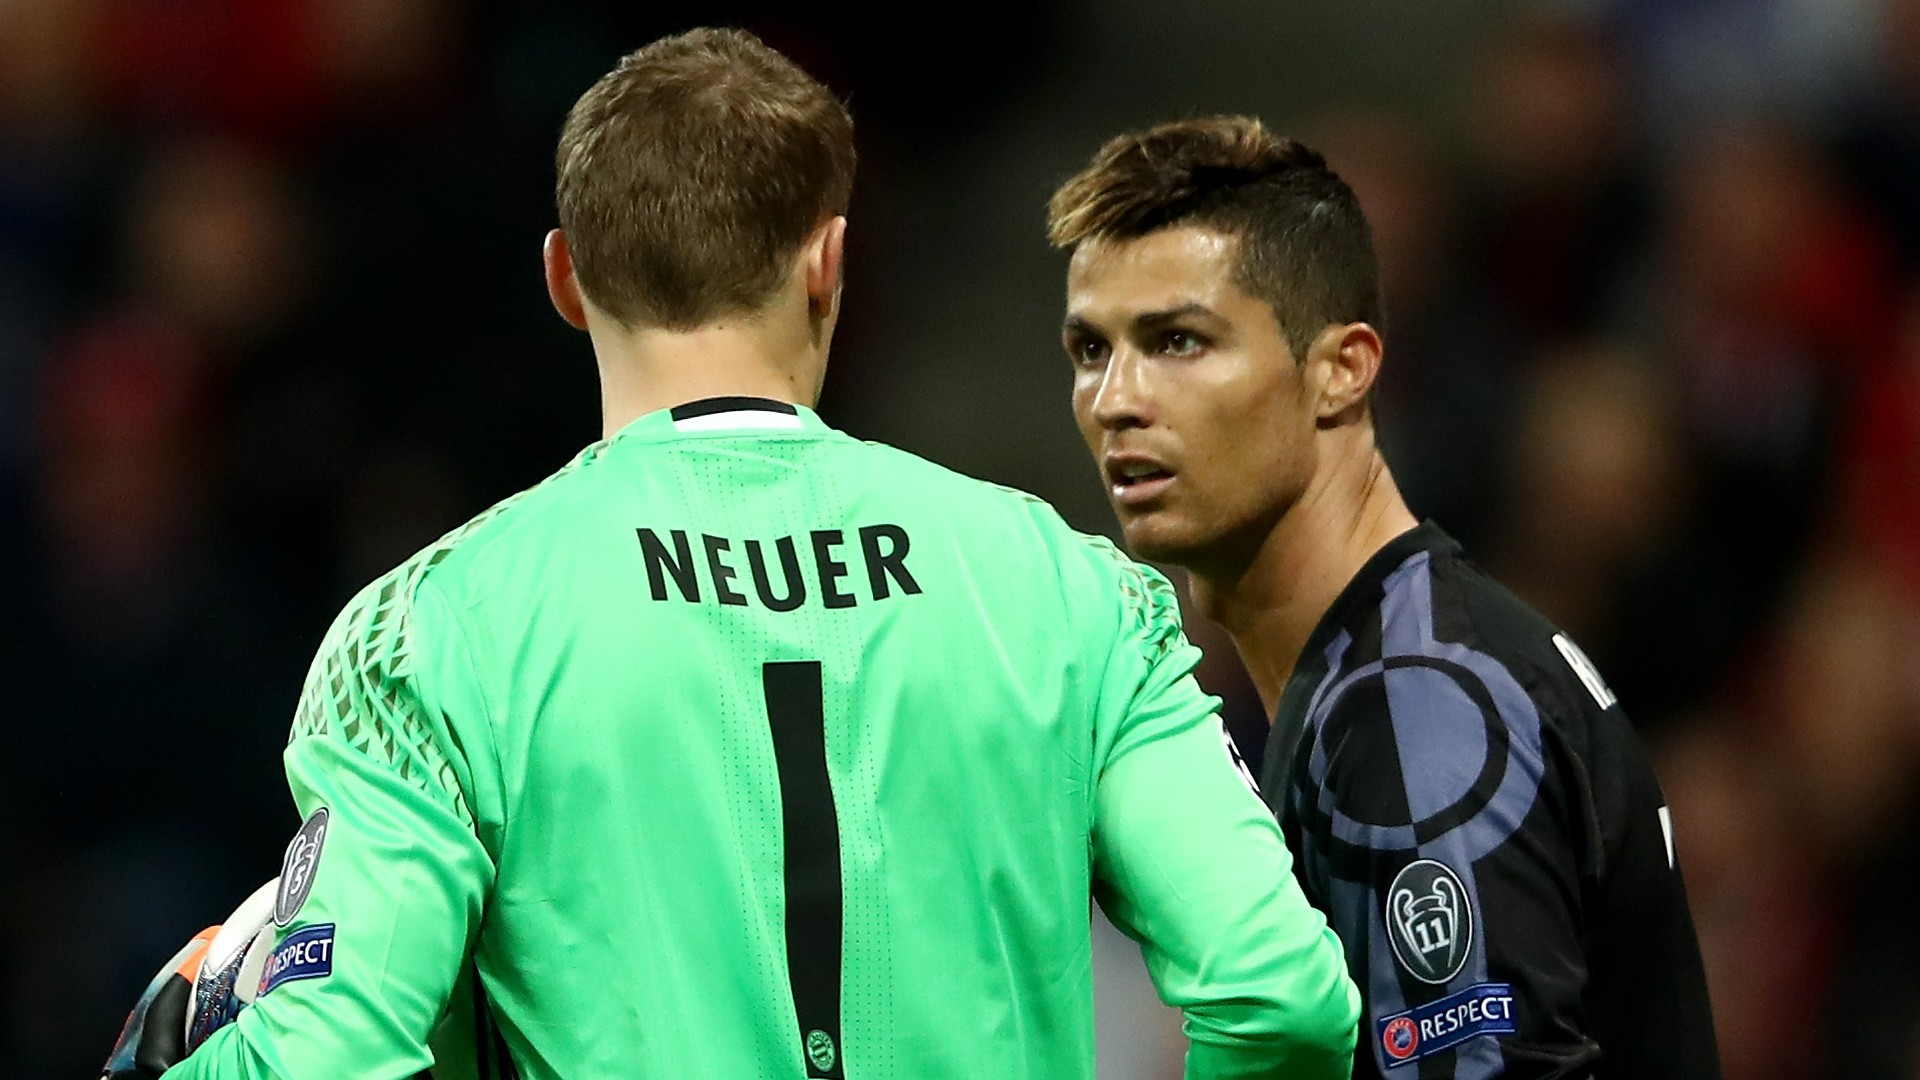 Ronaldo holds no fear for Neuer as Bayern Munich goalkeeper embraces 'special challenge'